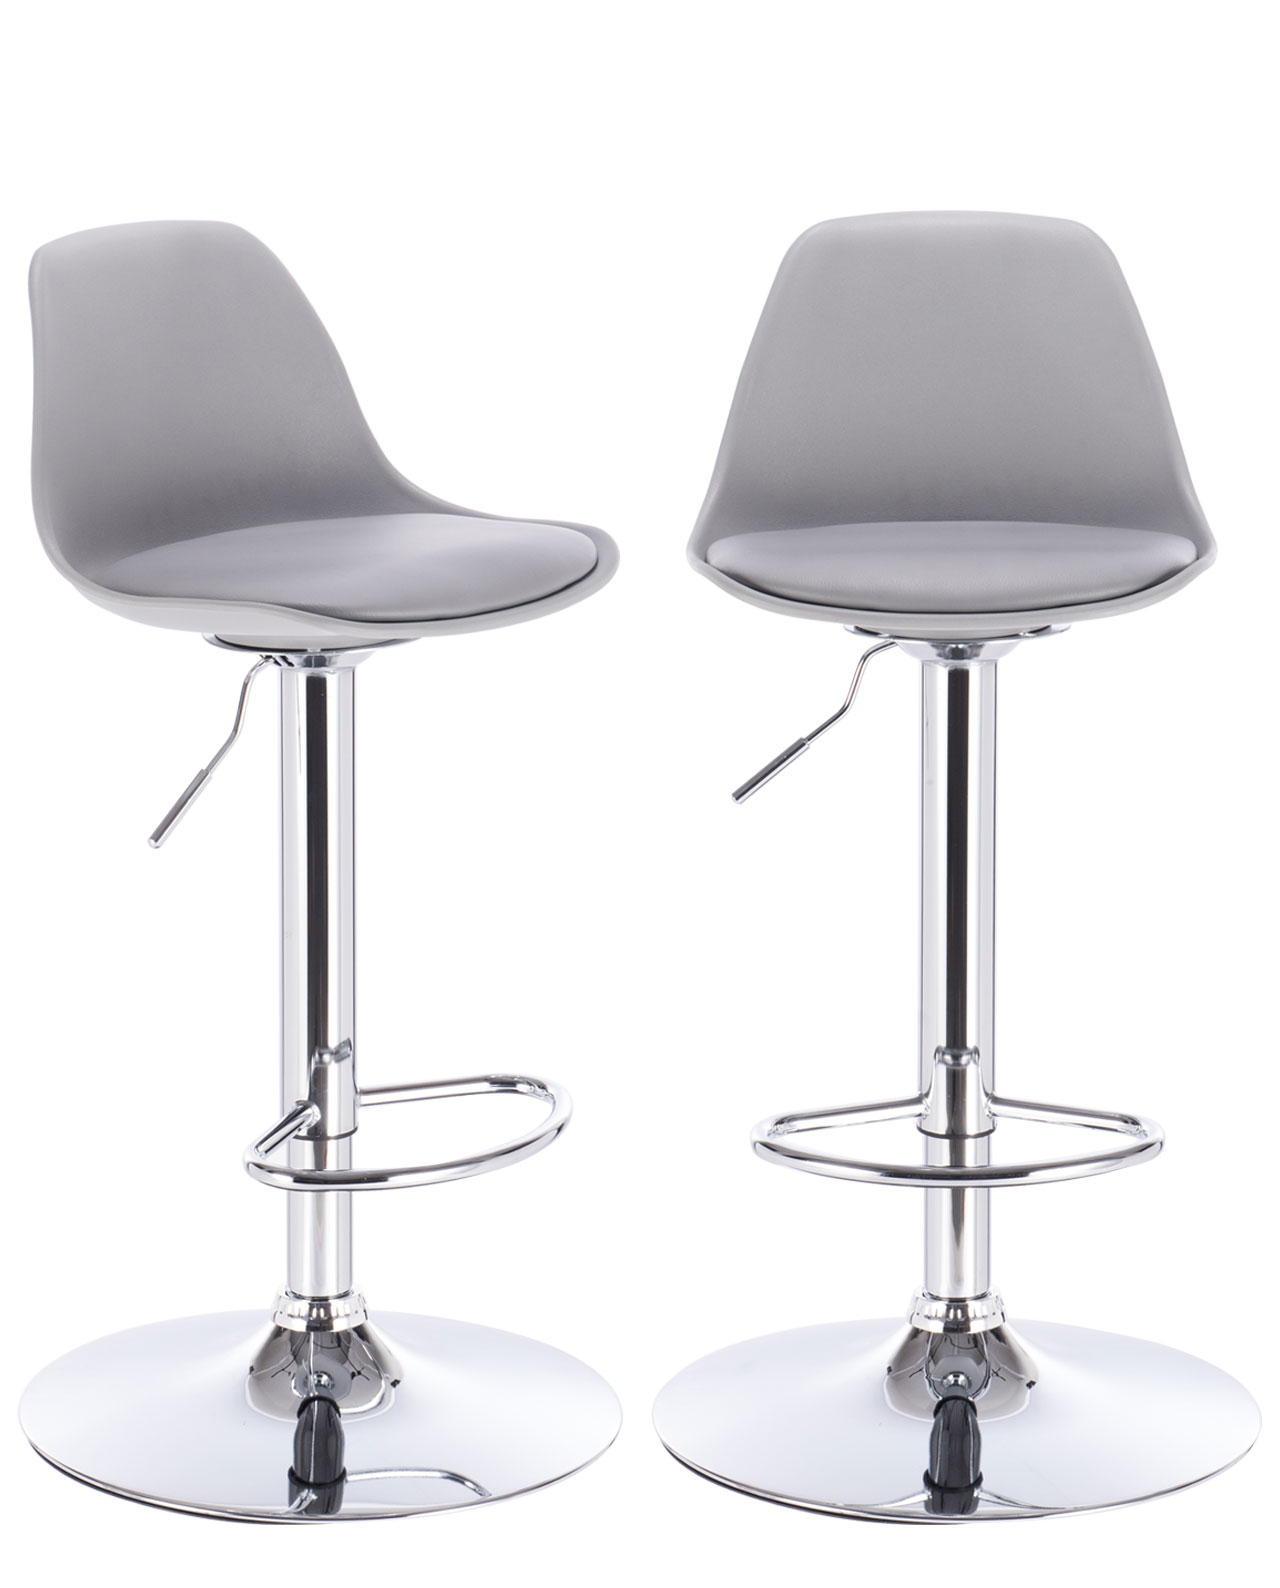 Tabourets De Bar Alu Sig Lot De 2 Tabourets De Bar Design